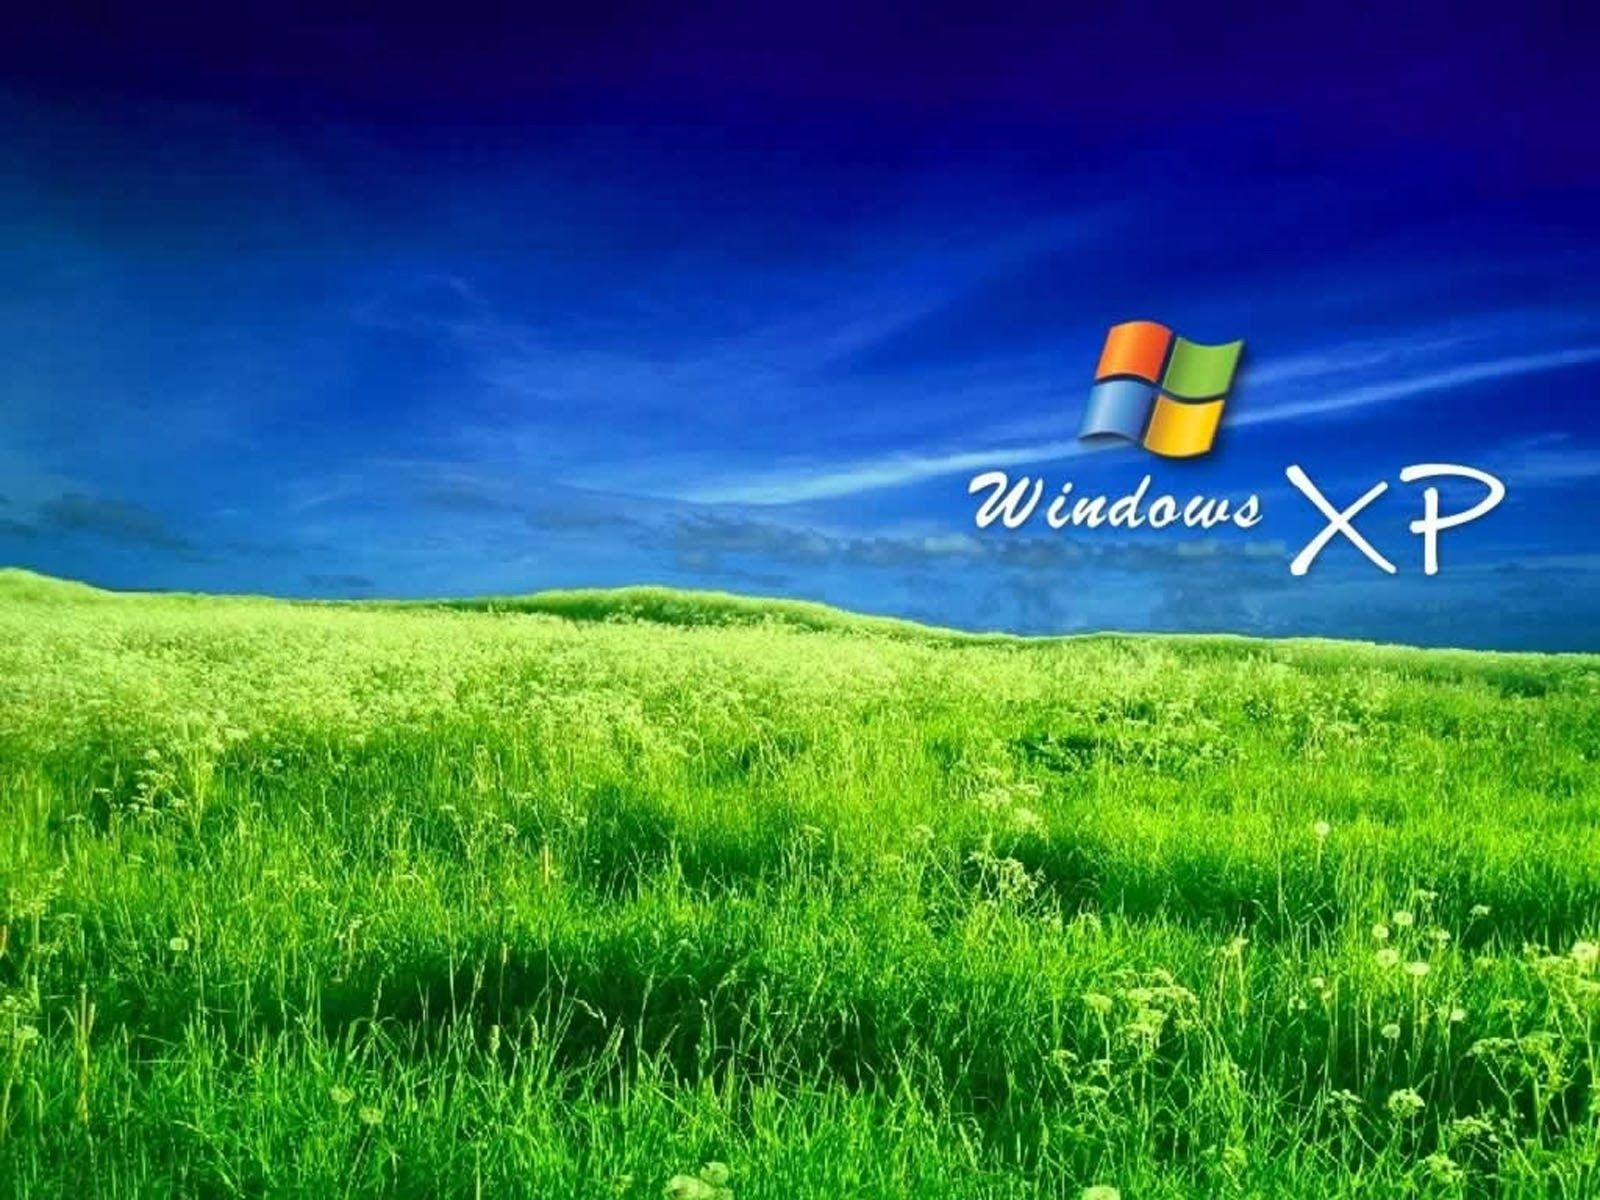 Free Windows XP Wallpapers Wallpaper